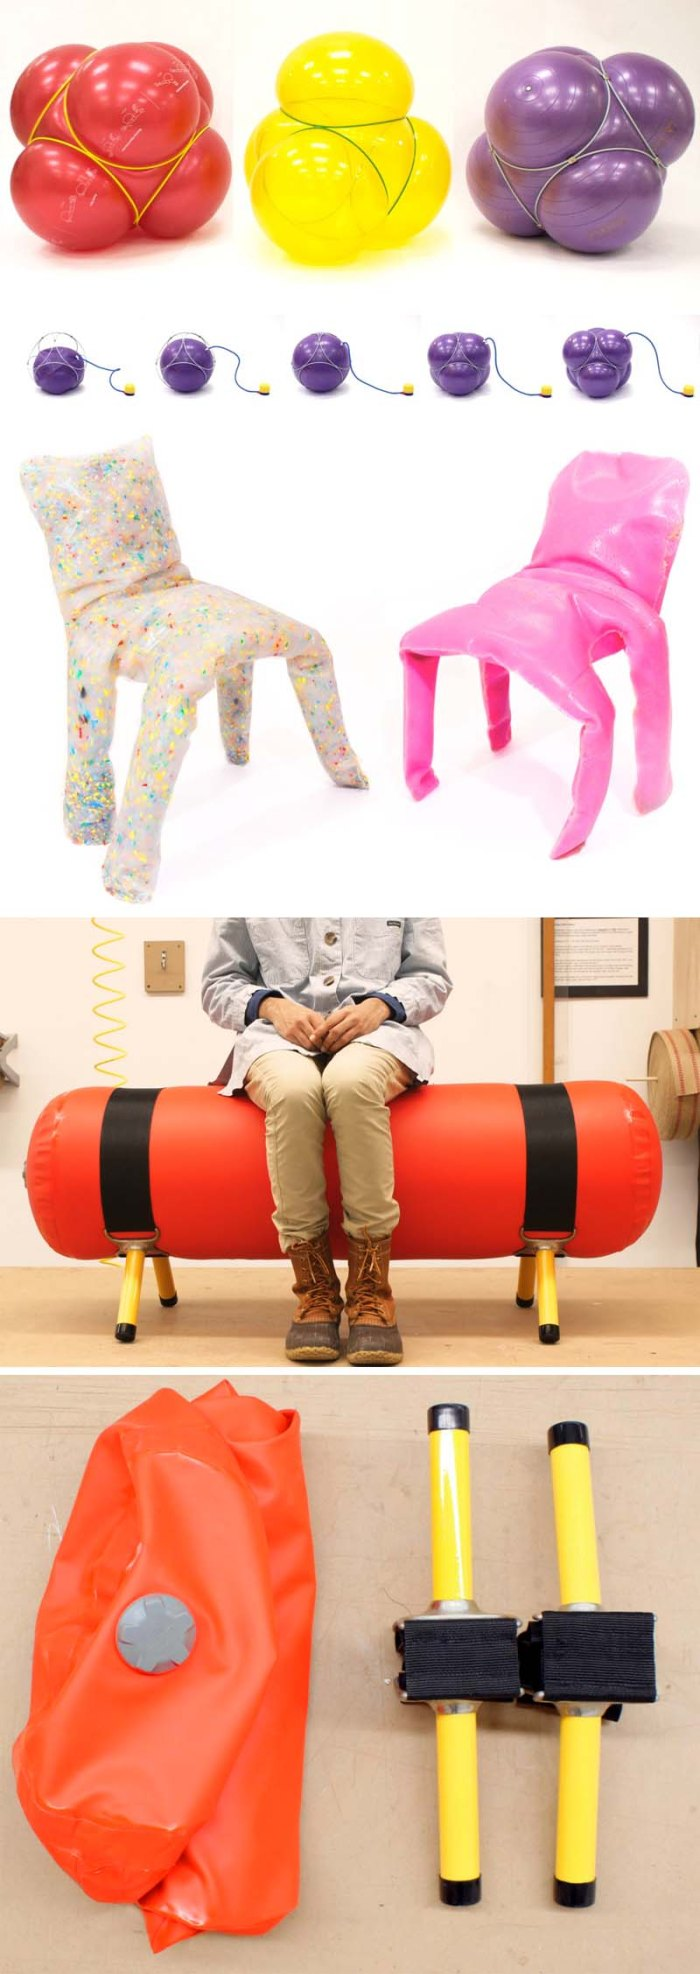 Fun furniture design by Jamie Wolfond, Industrial design, inflatable and foam stools, chairs, bench Emergency Bench, Frumpy Chairs, Ball Ottoman